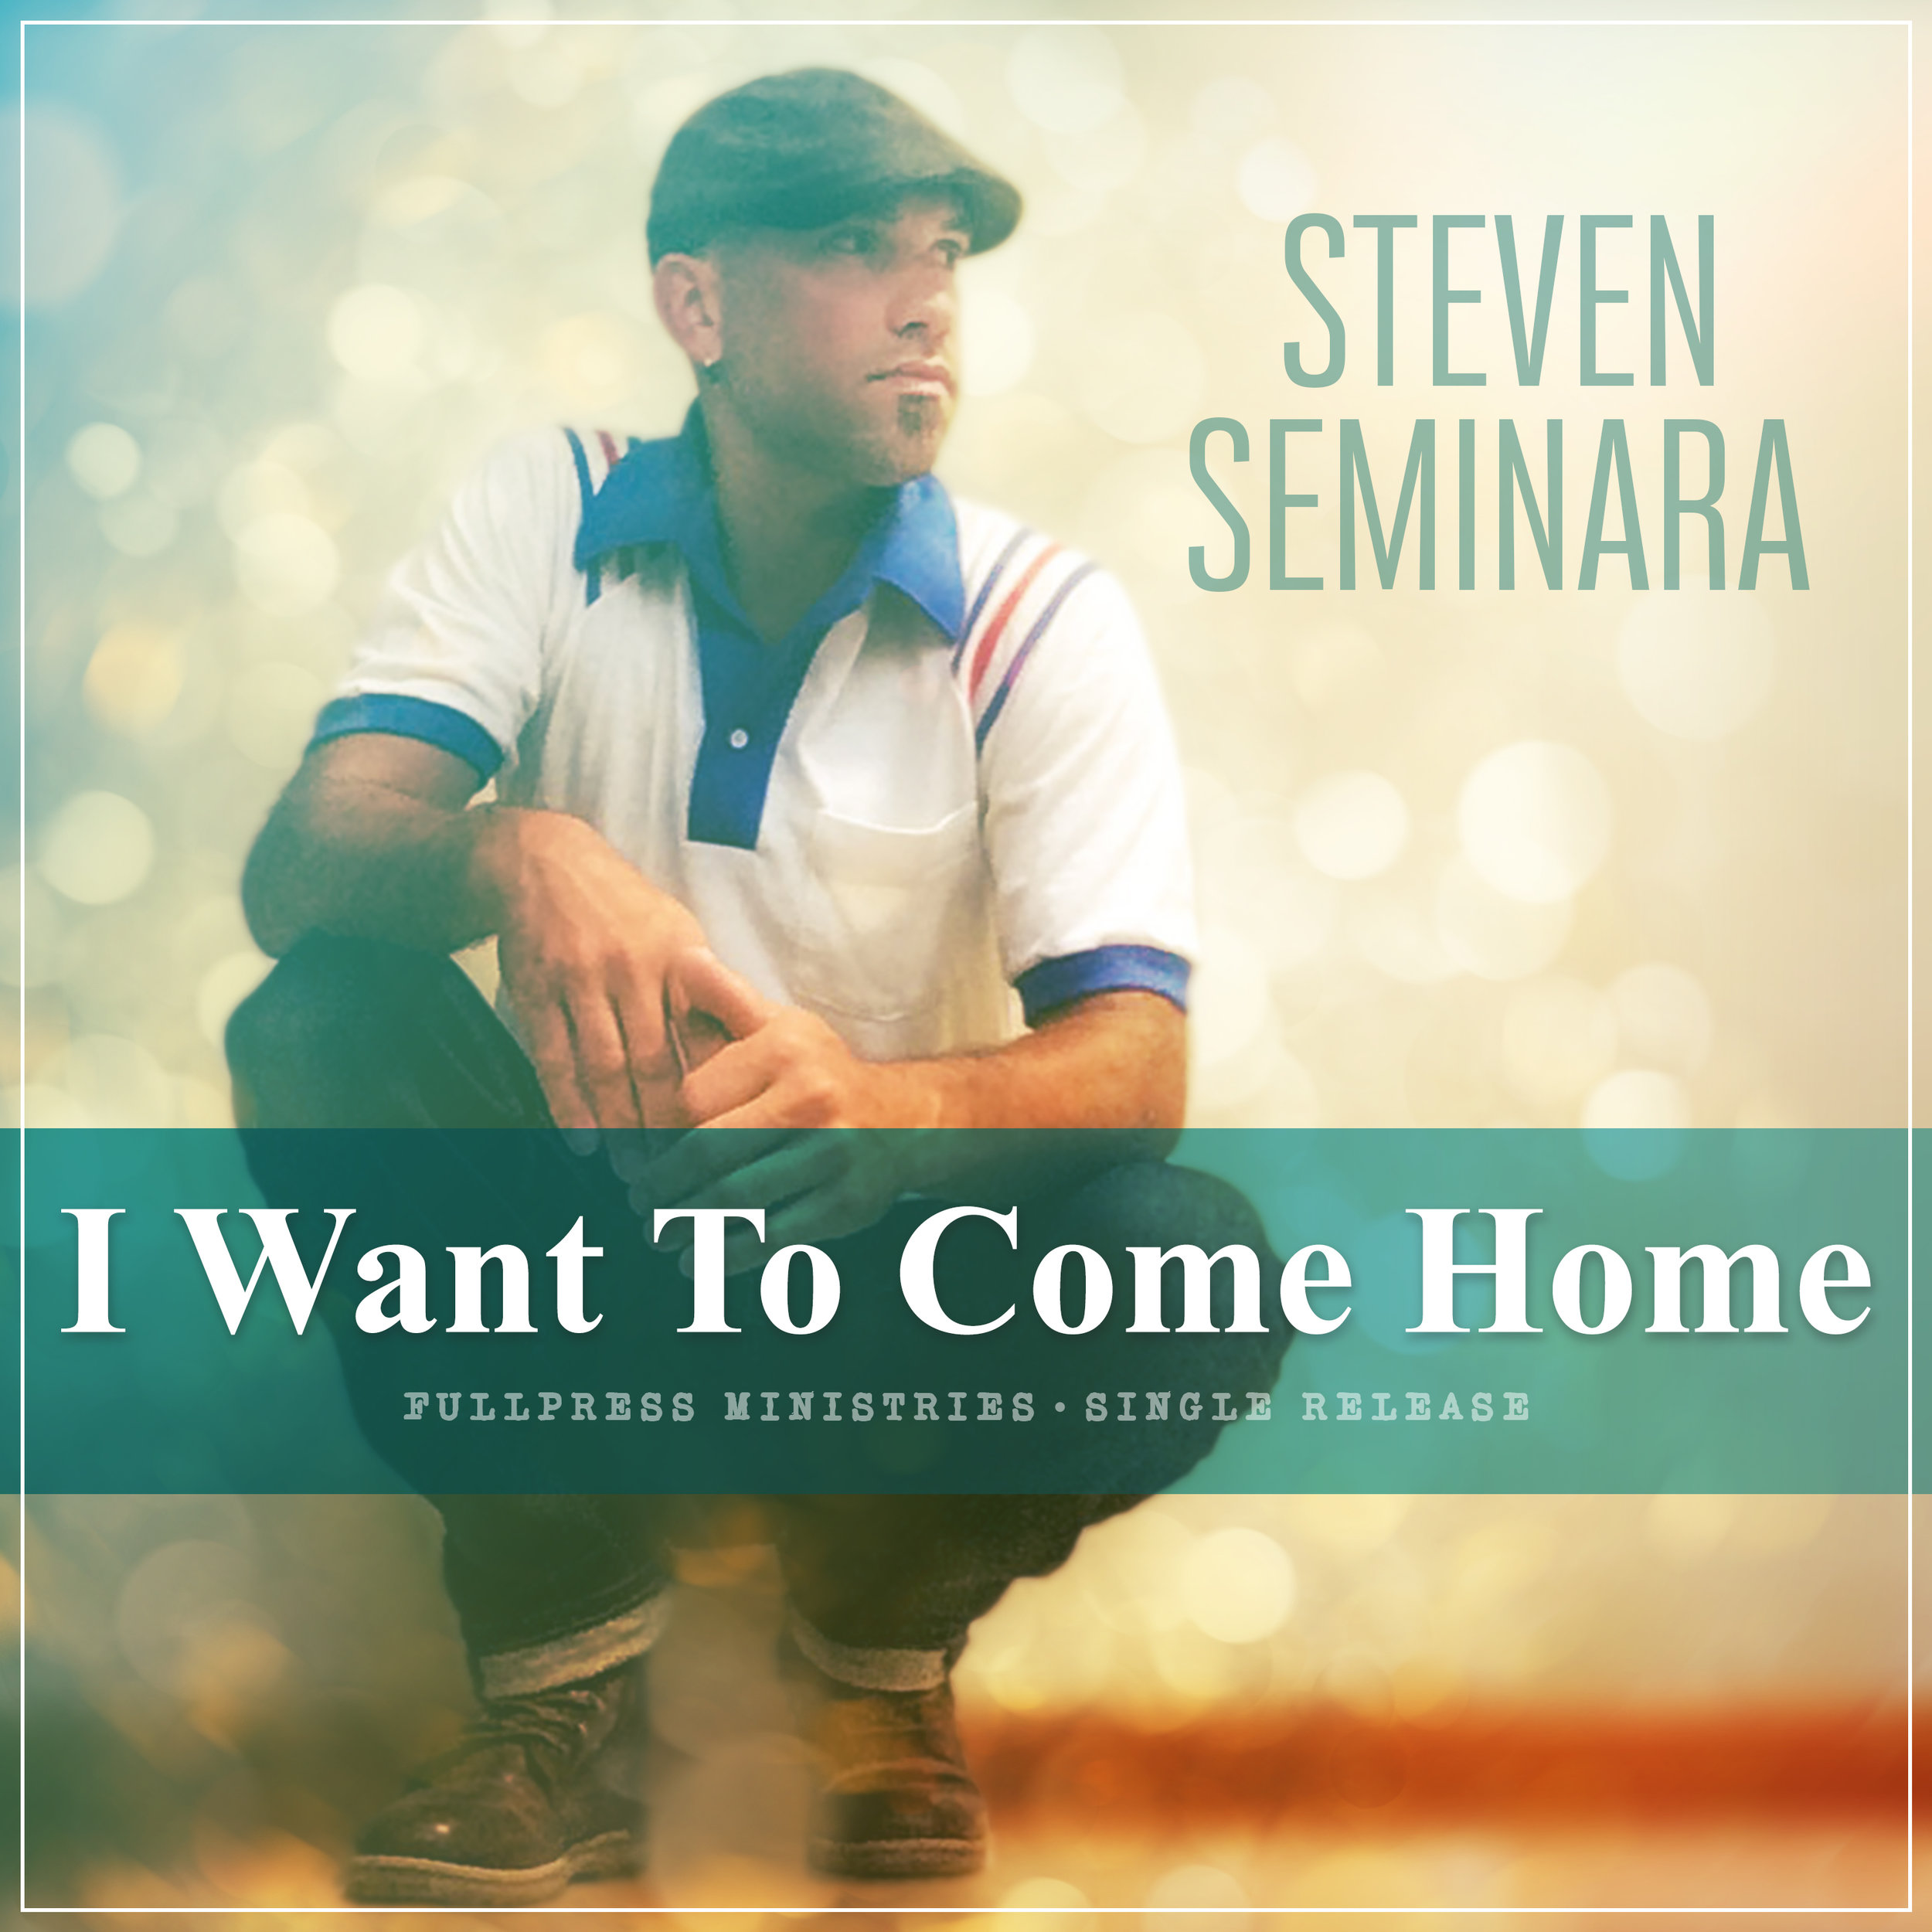 I Want To Come Home - (Single)Click picture for purchase!